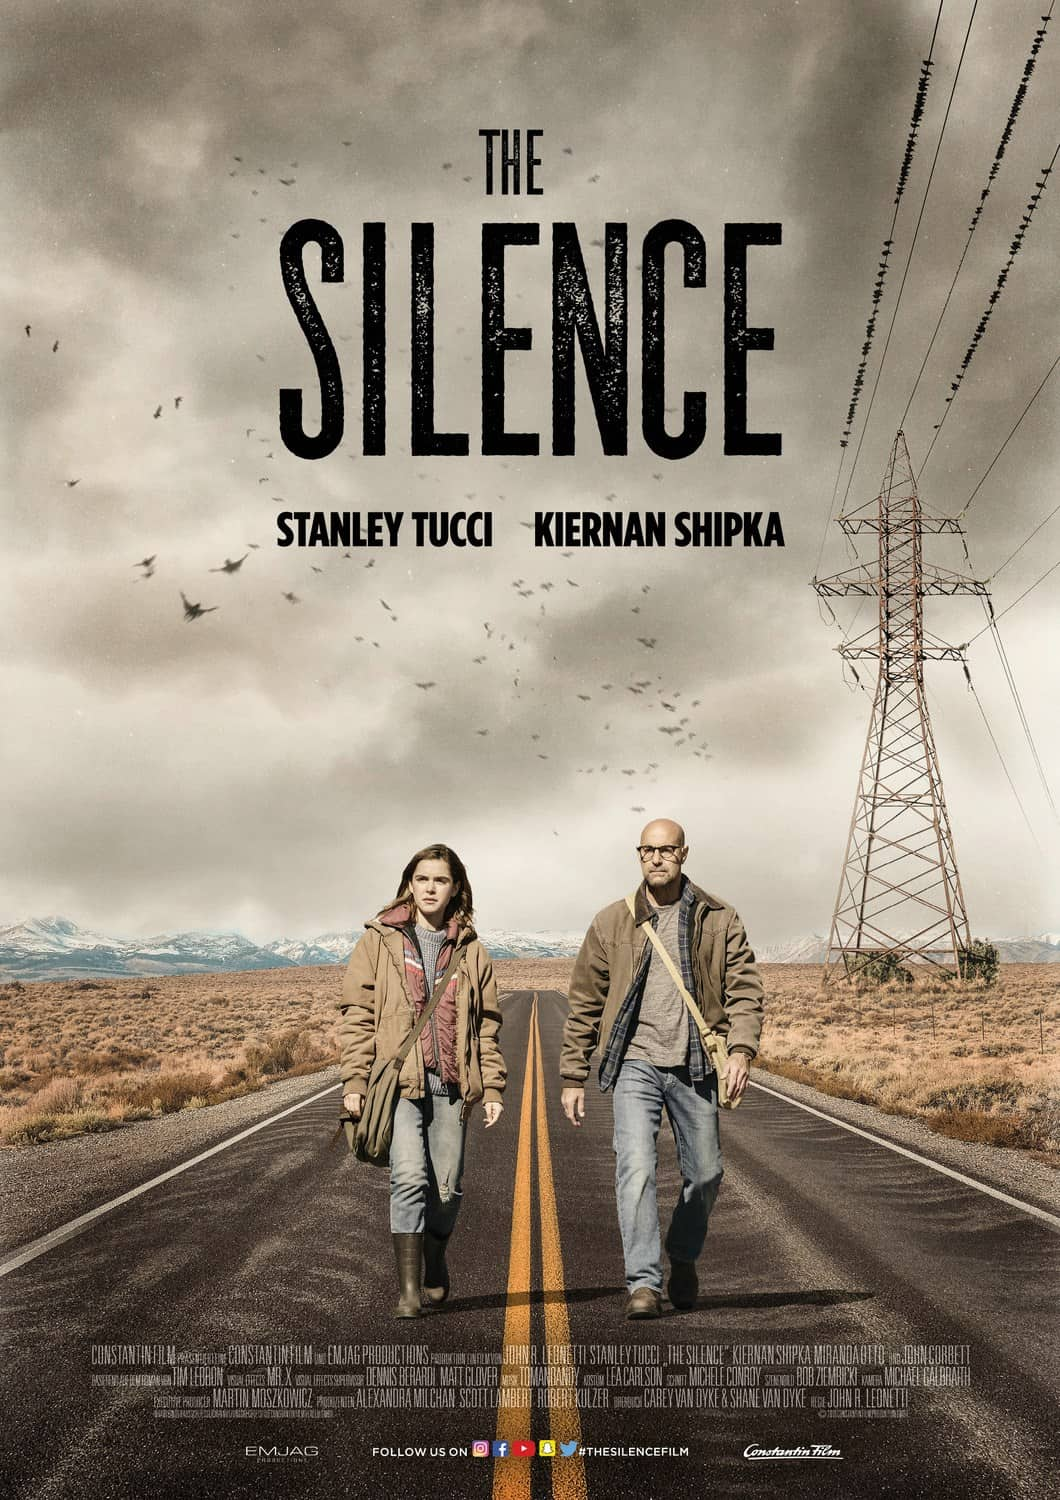 Mike's Review: The Silence (2019)